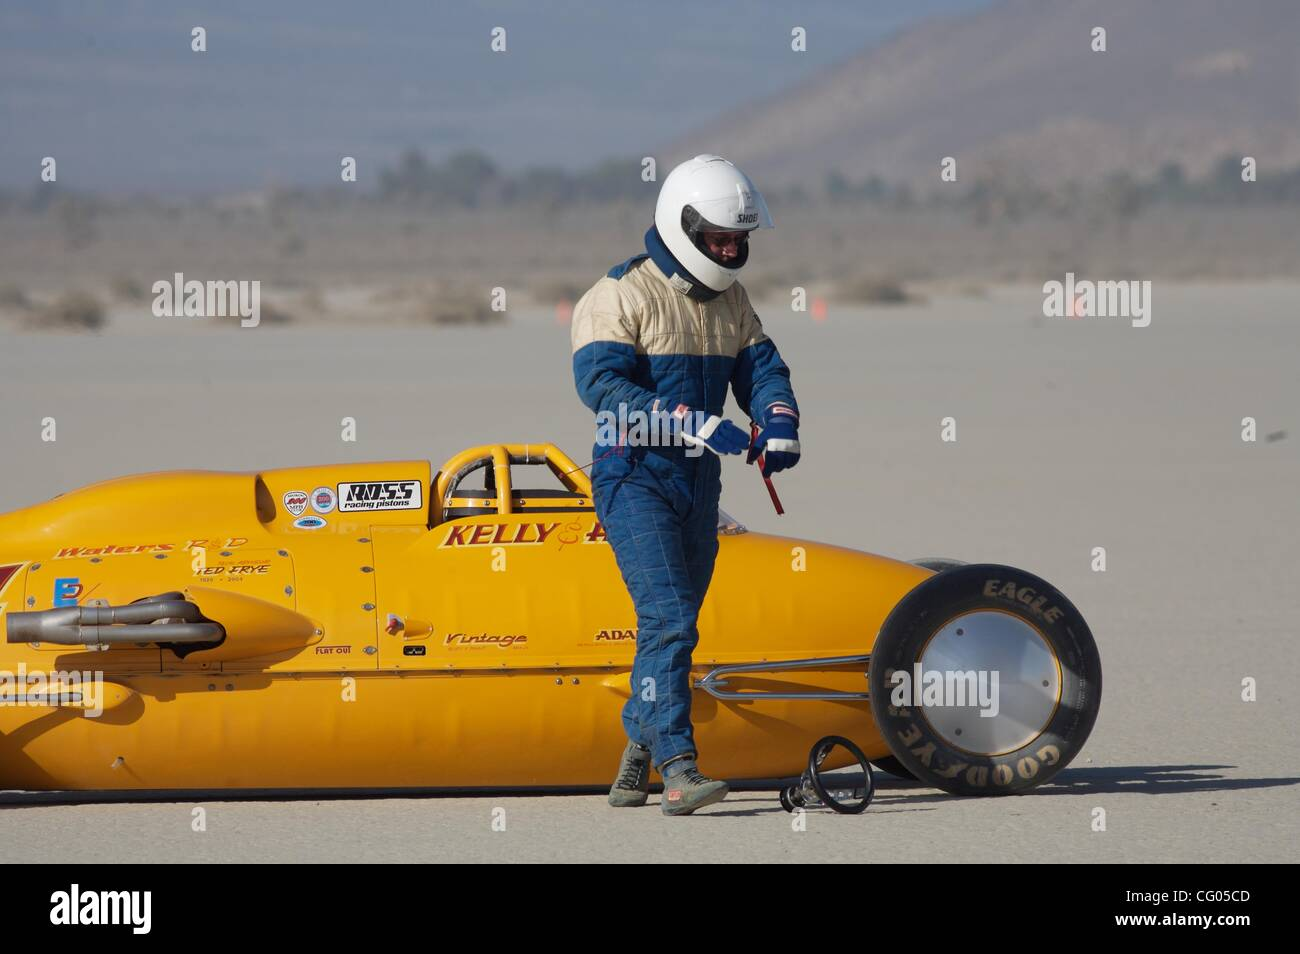 Jun 11, 2007 - El Mirage, California, United States - El Mirage dry lake bed has been home to Land Speed Racing Stock Photo